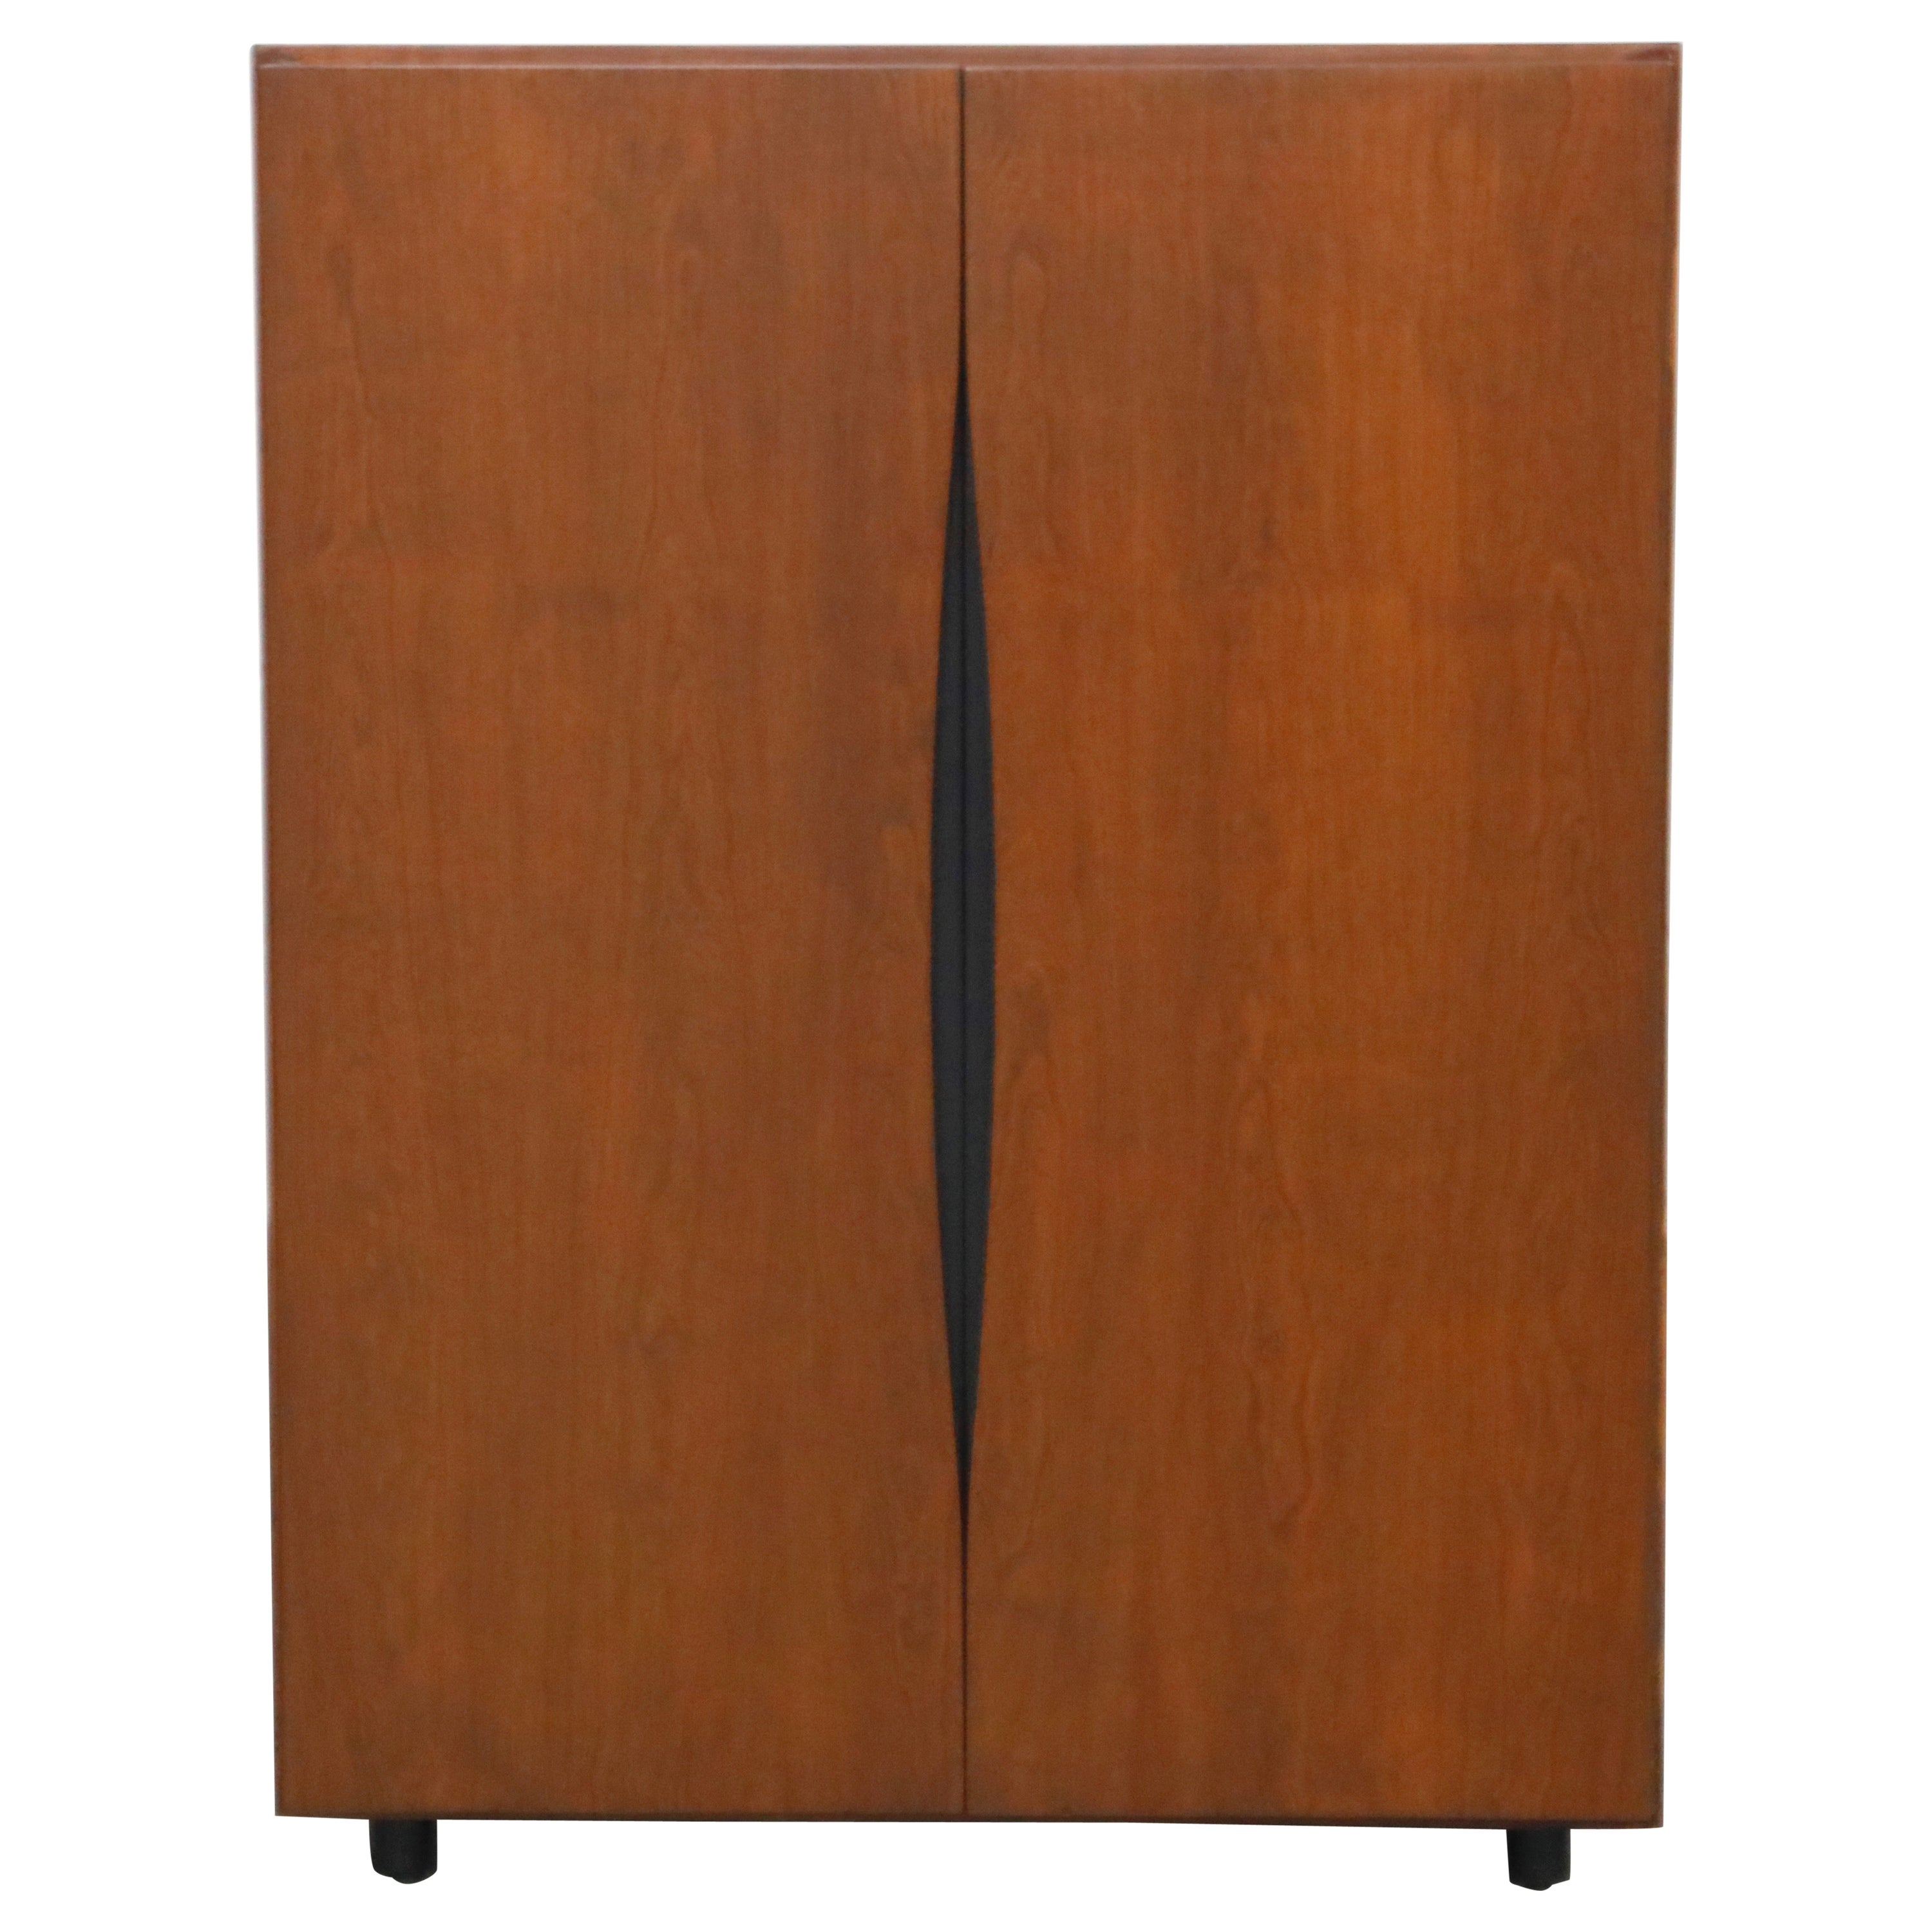 Vladimir Kagan for Grosfeld House Accessory Armoire Cabinet, 1950s, Signed